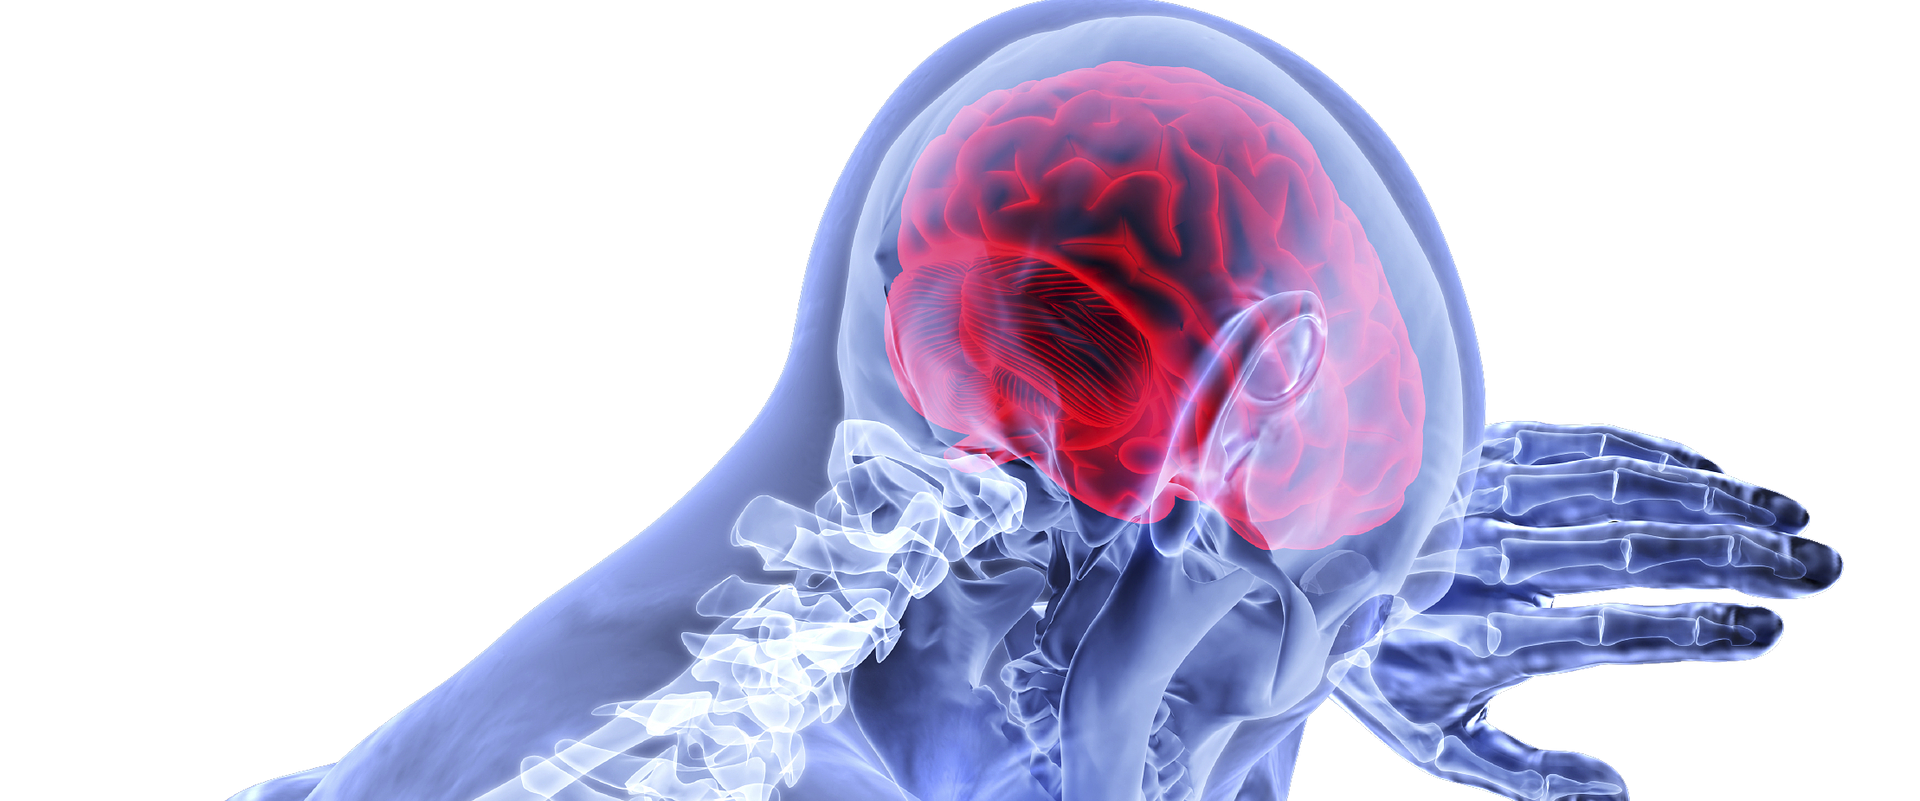 Rehabilitation after traumatic brain injury